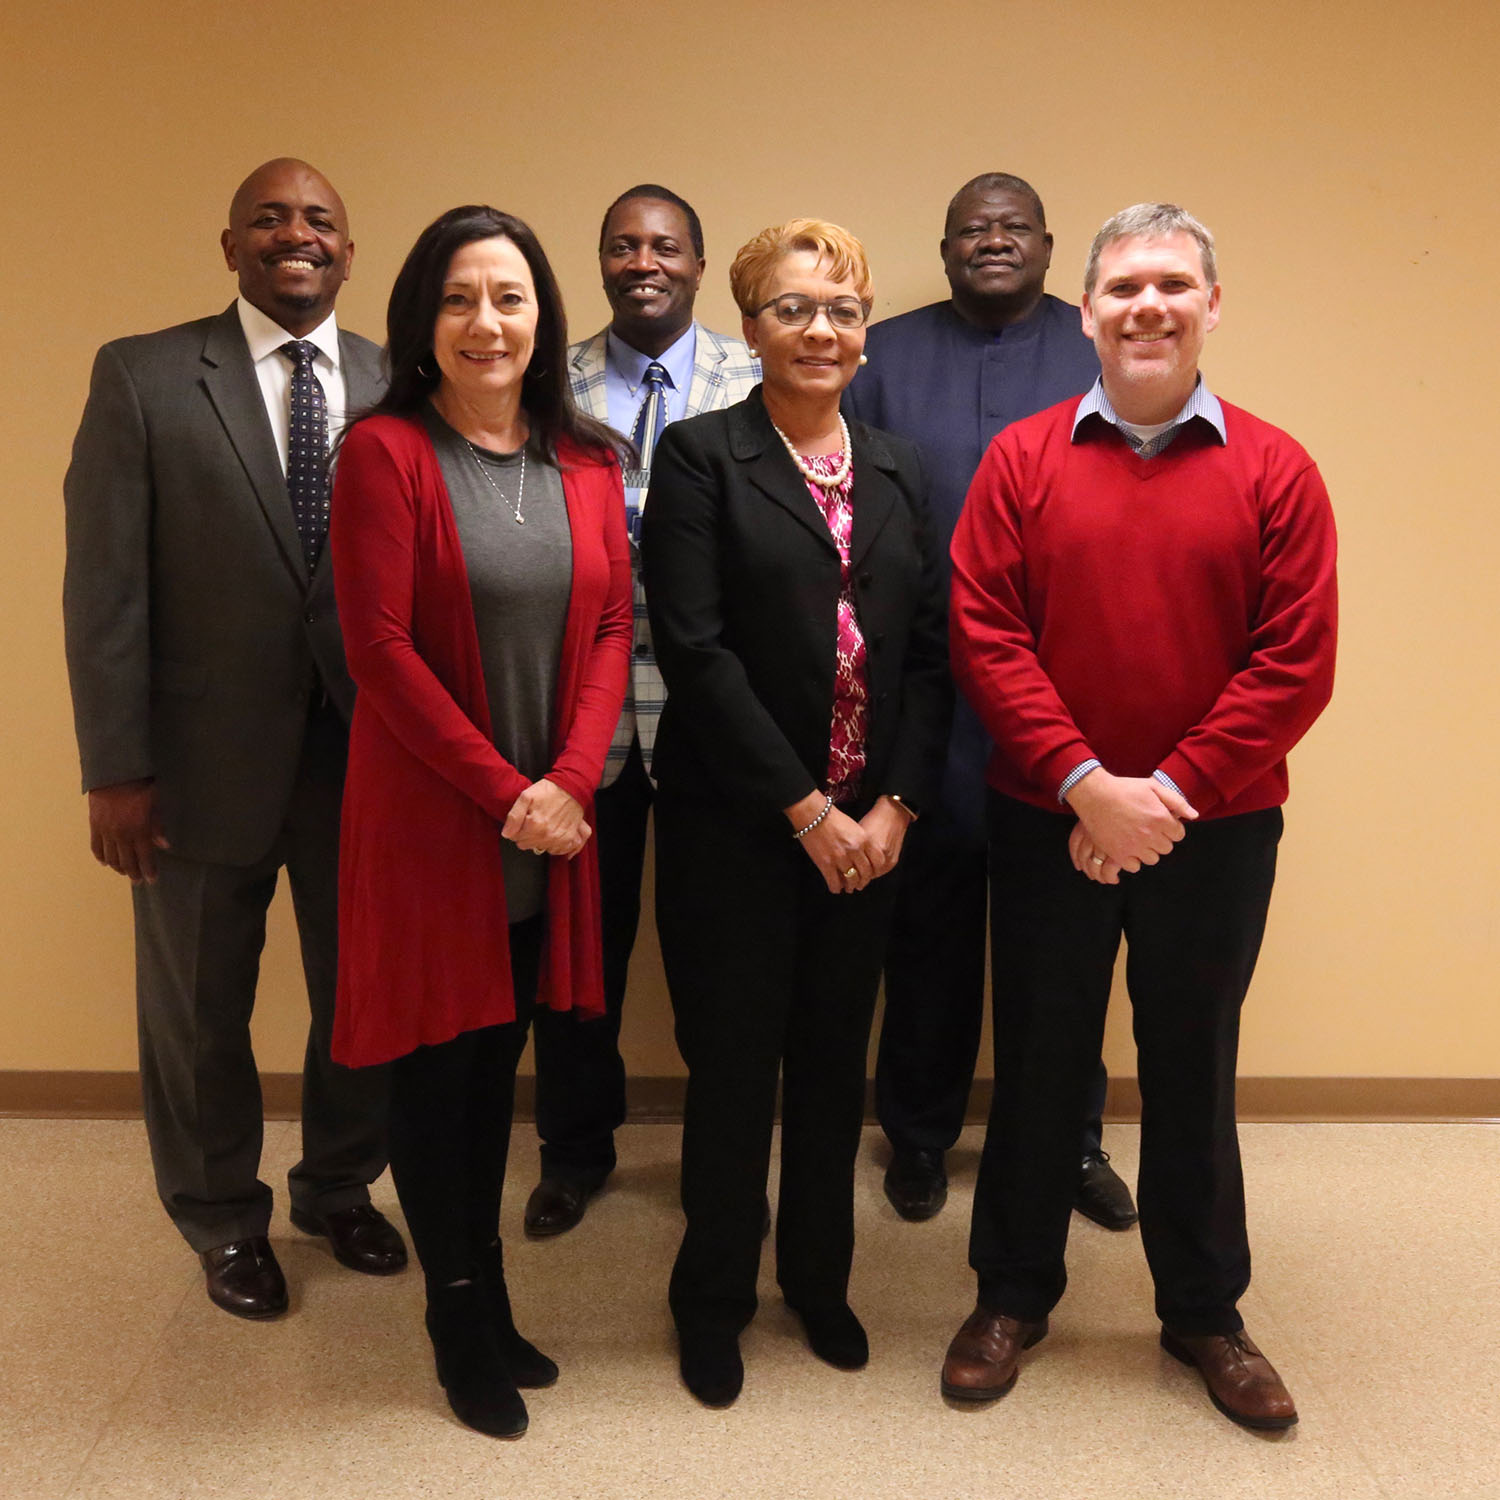 Quitman School District Board of Trustees pose for a photo.